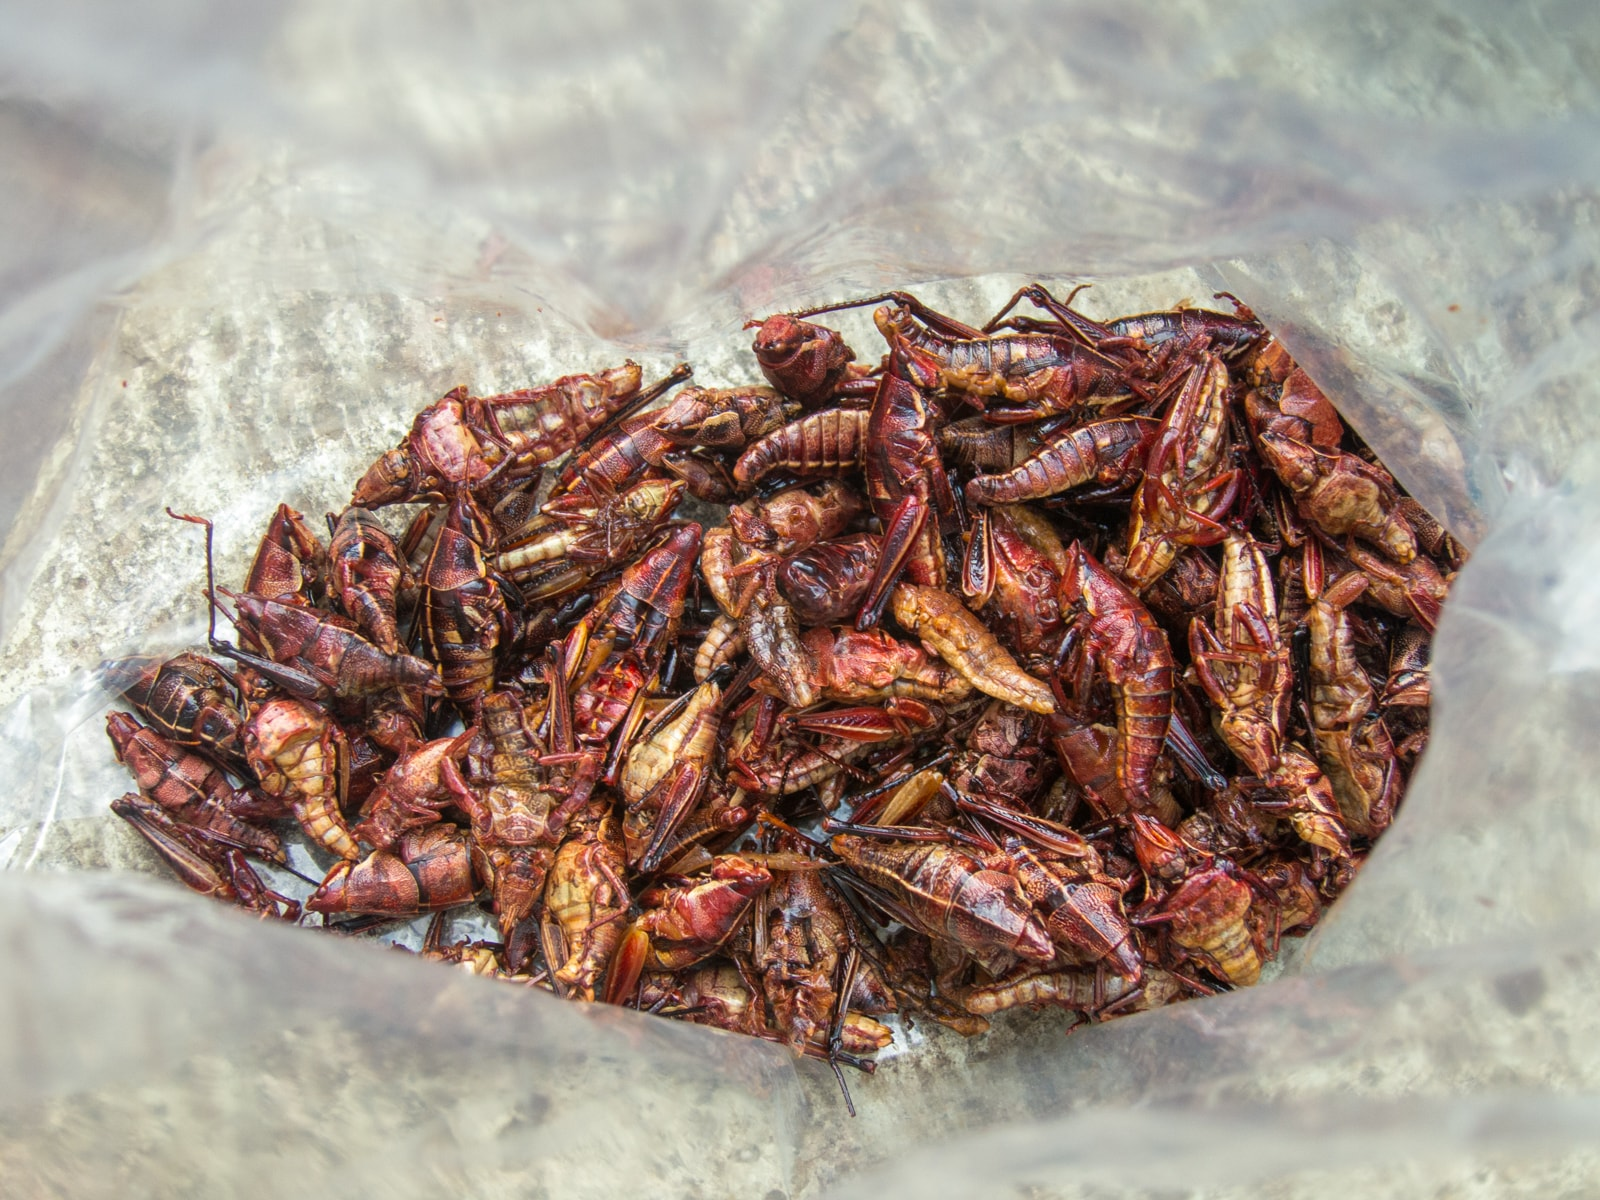 Chapulines (grasshoppers) are a typical Oaxaca food